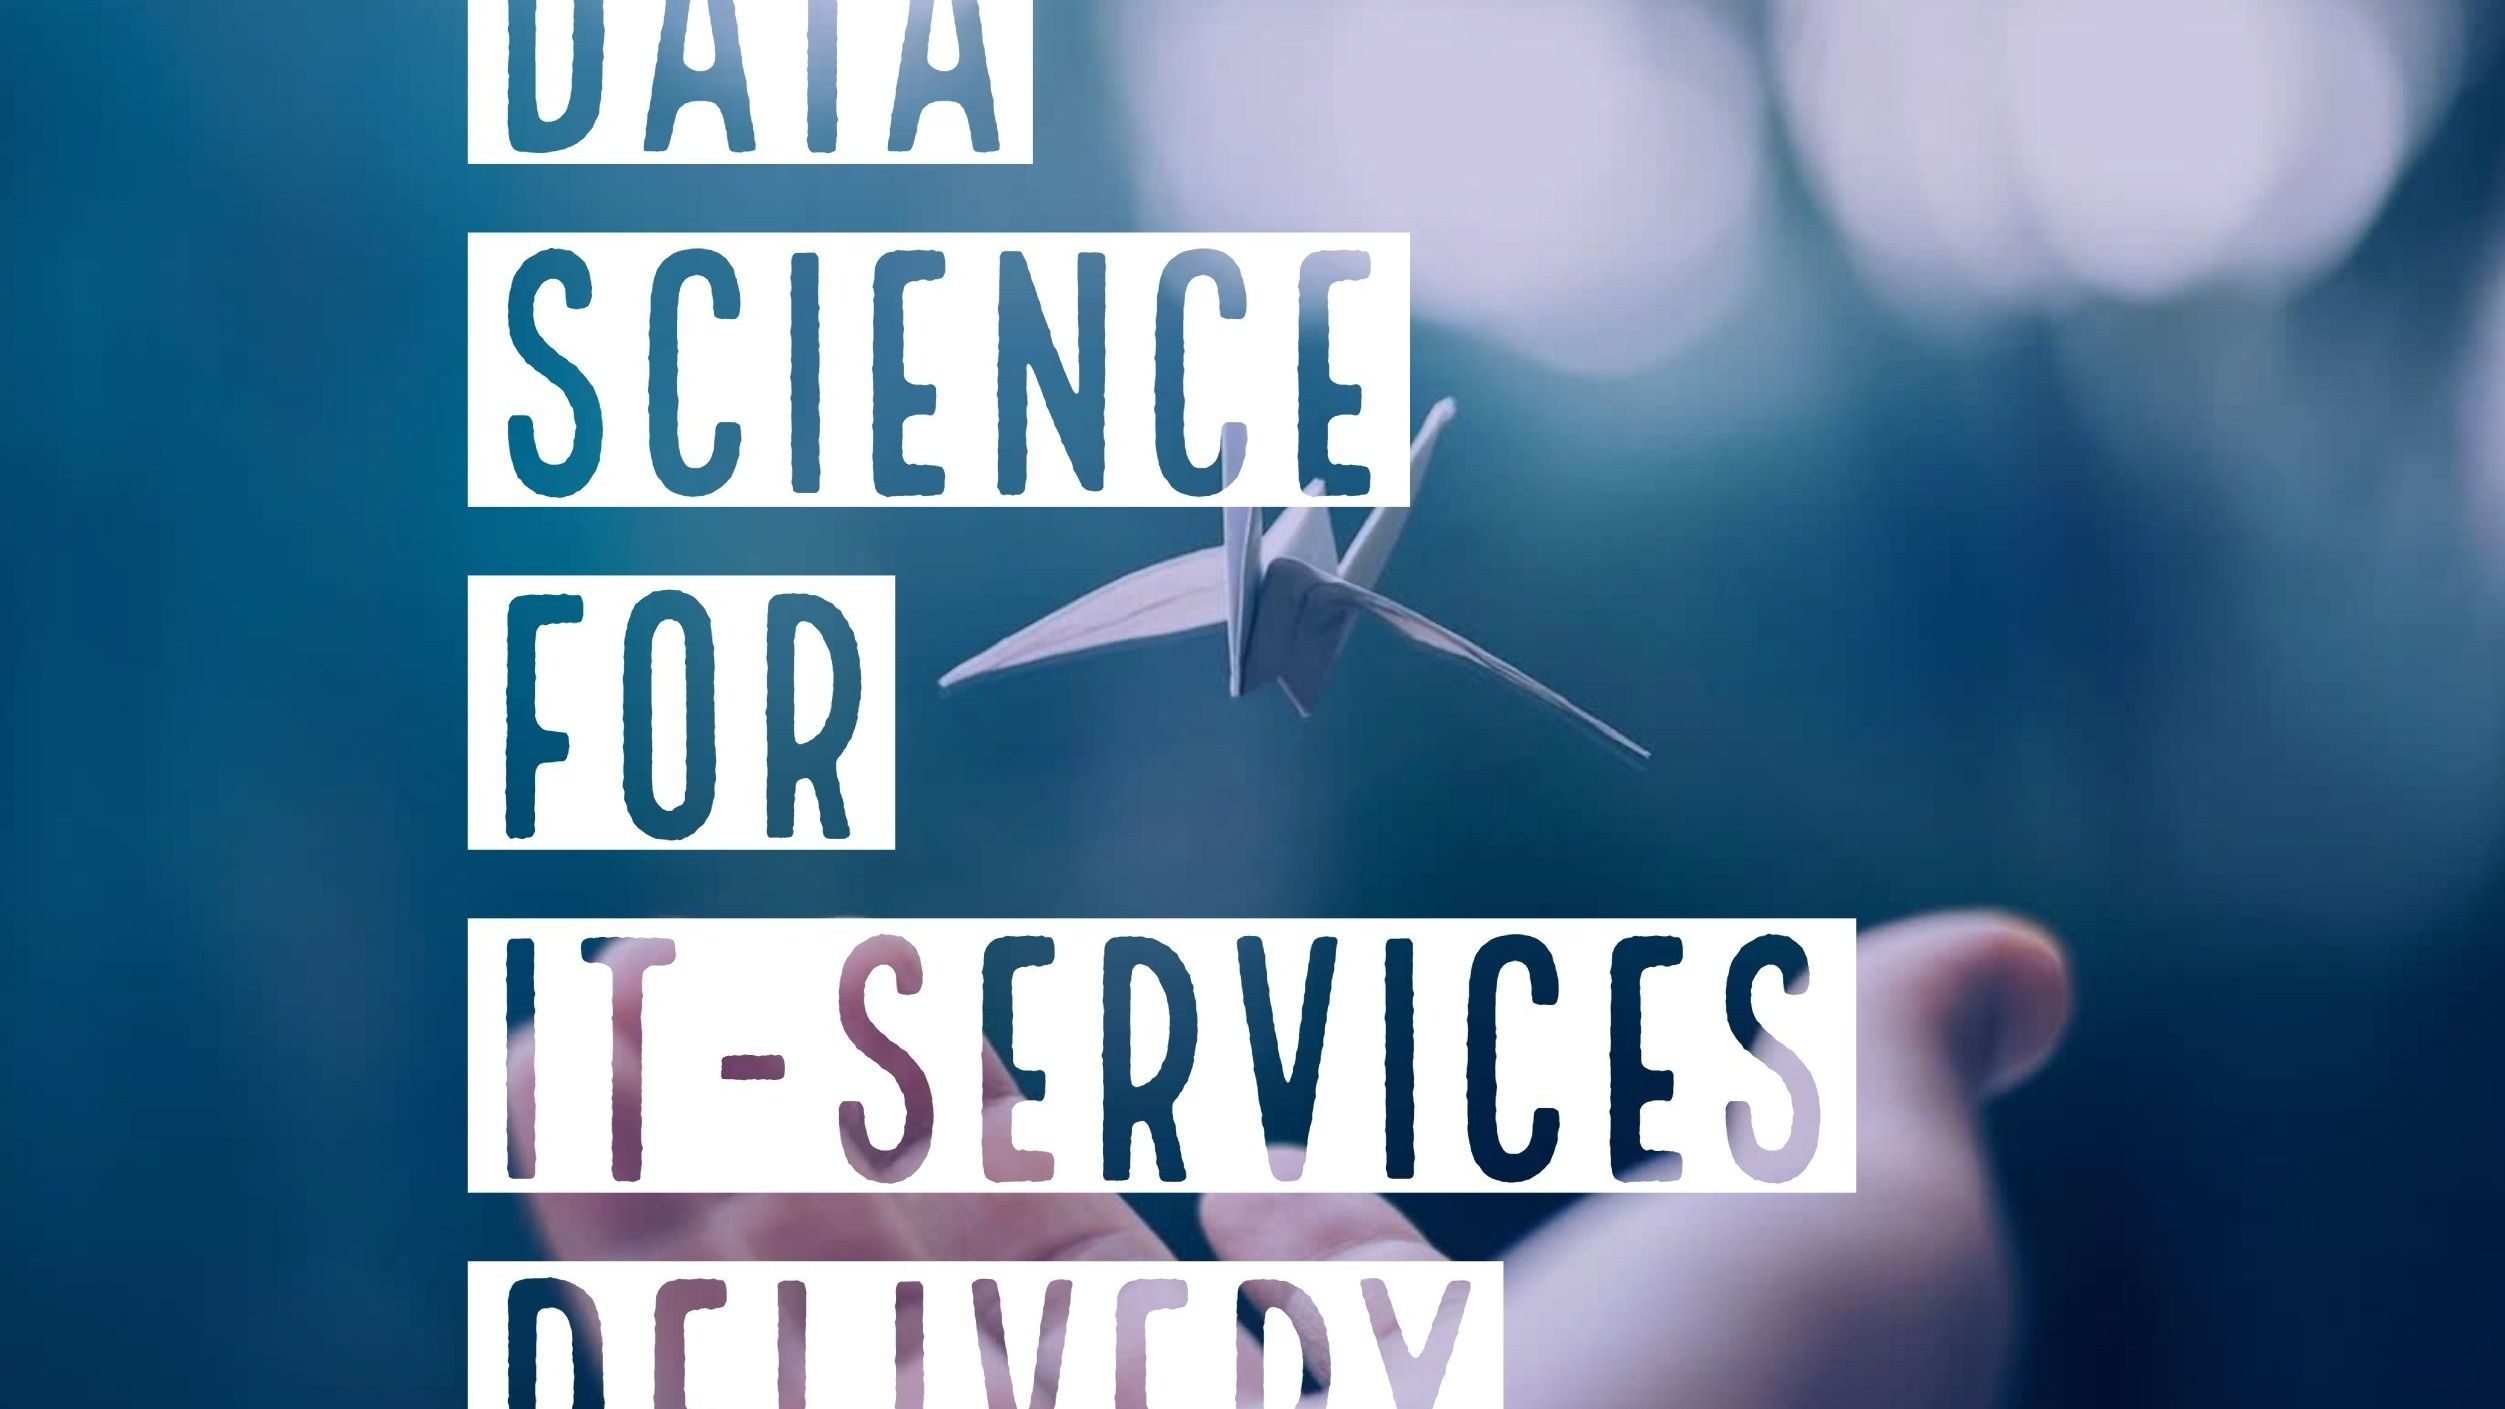 Data Science for IT Services Delivery